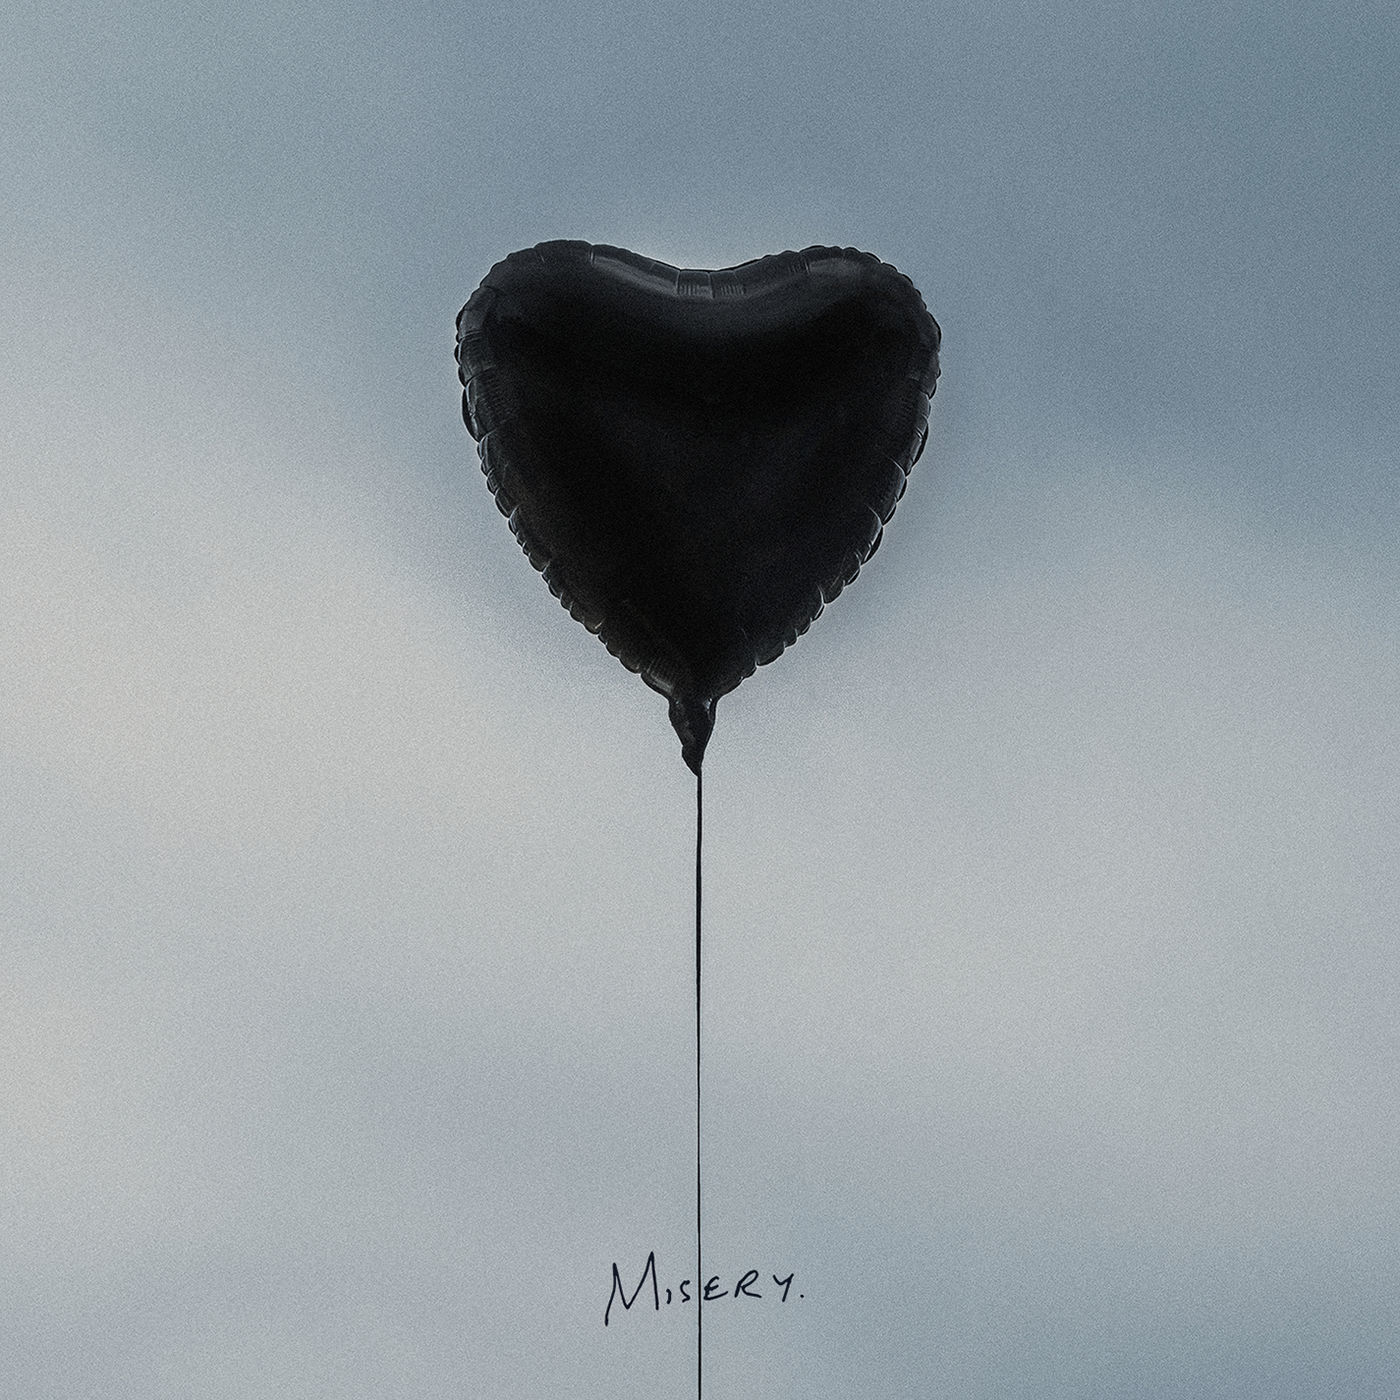 Download torrent The Amity Affliction - Misery (2018)